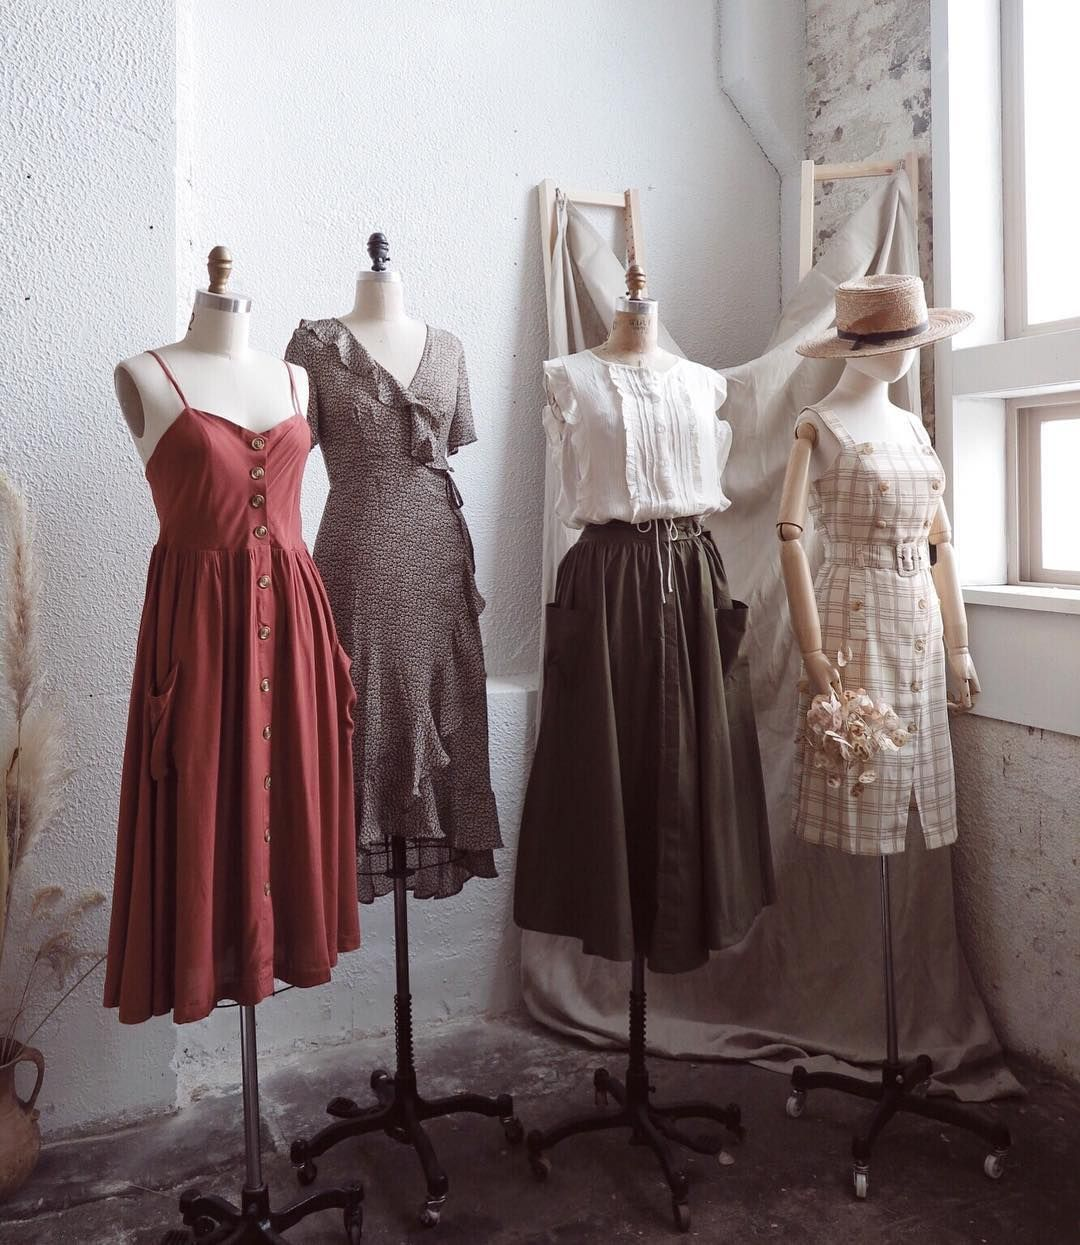 25 Great Outfit Ideas Vintage To Wear Right Now Fashion Vintage Outfits Fashion Outfits